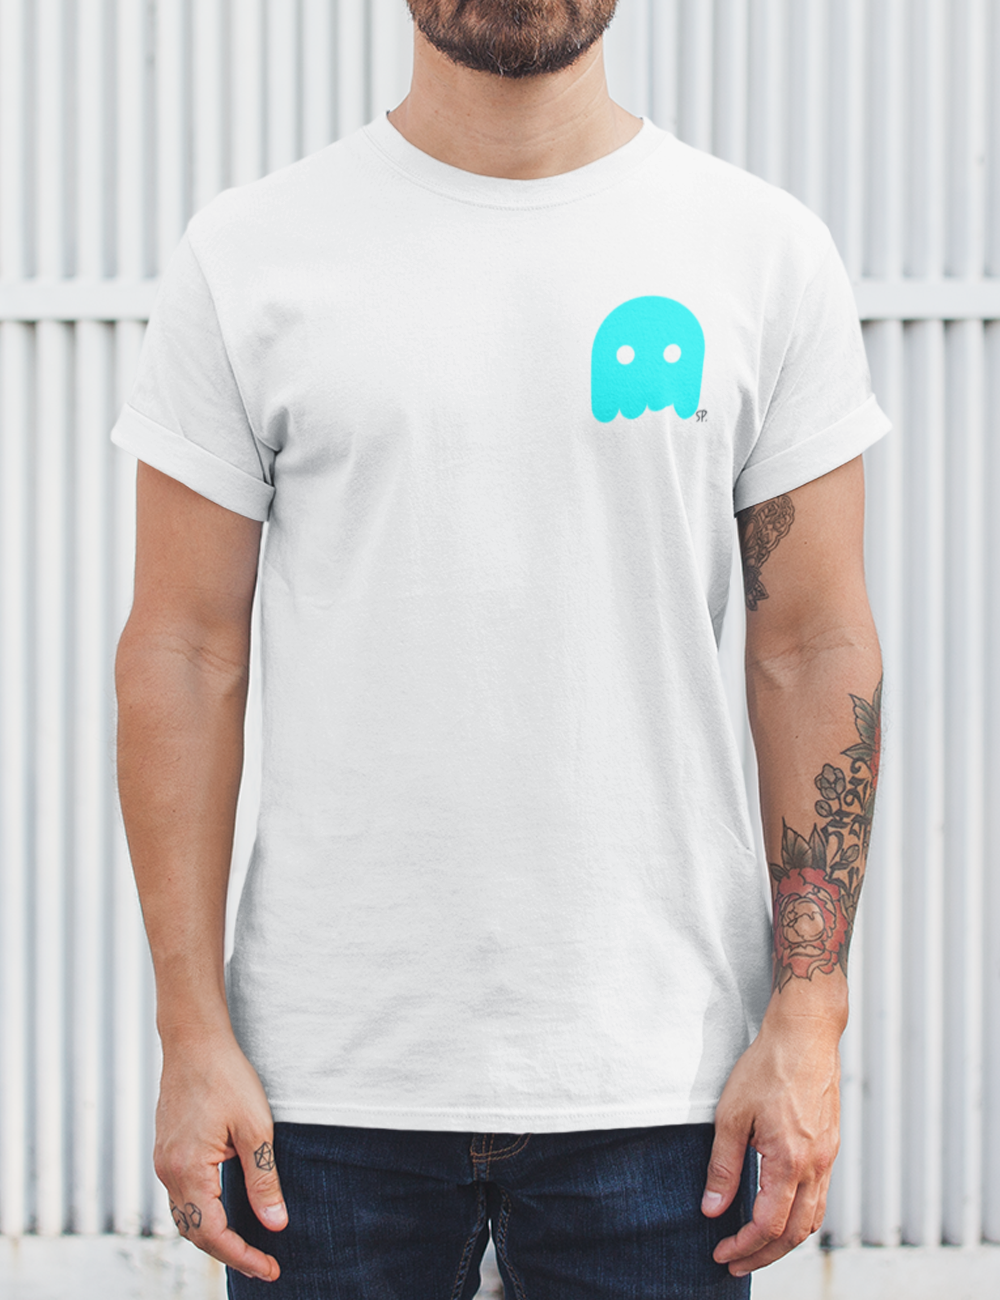 AS Colour Staple - Super Pig Tee - Jelly